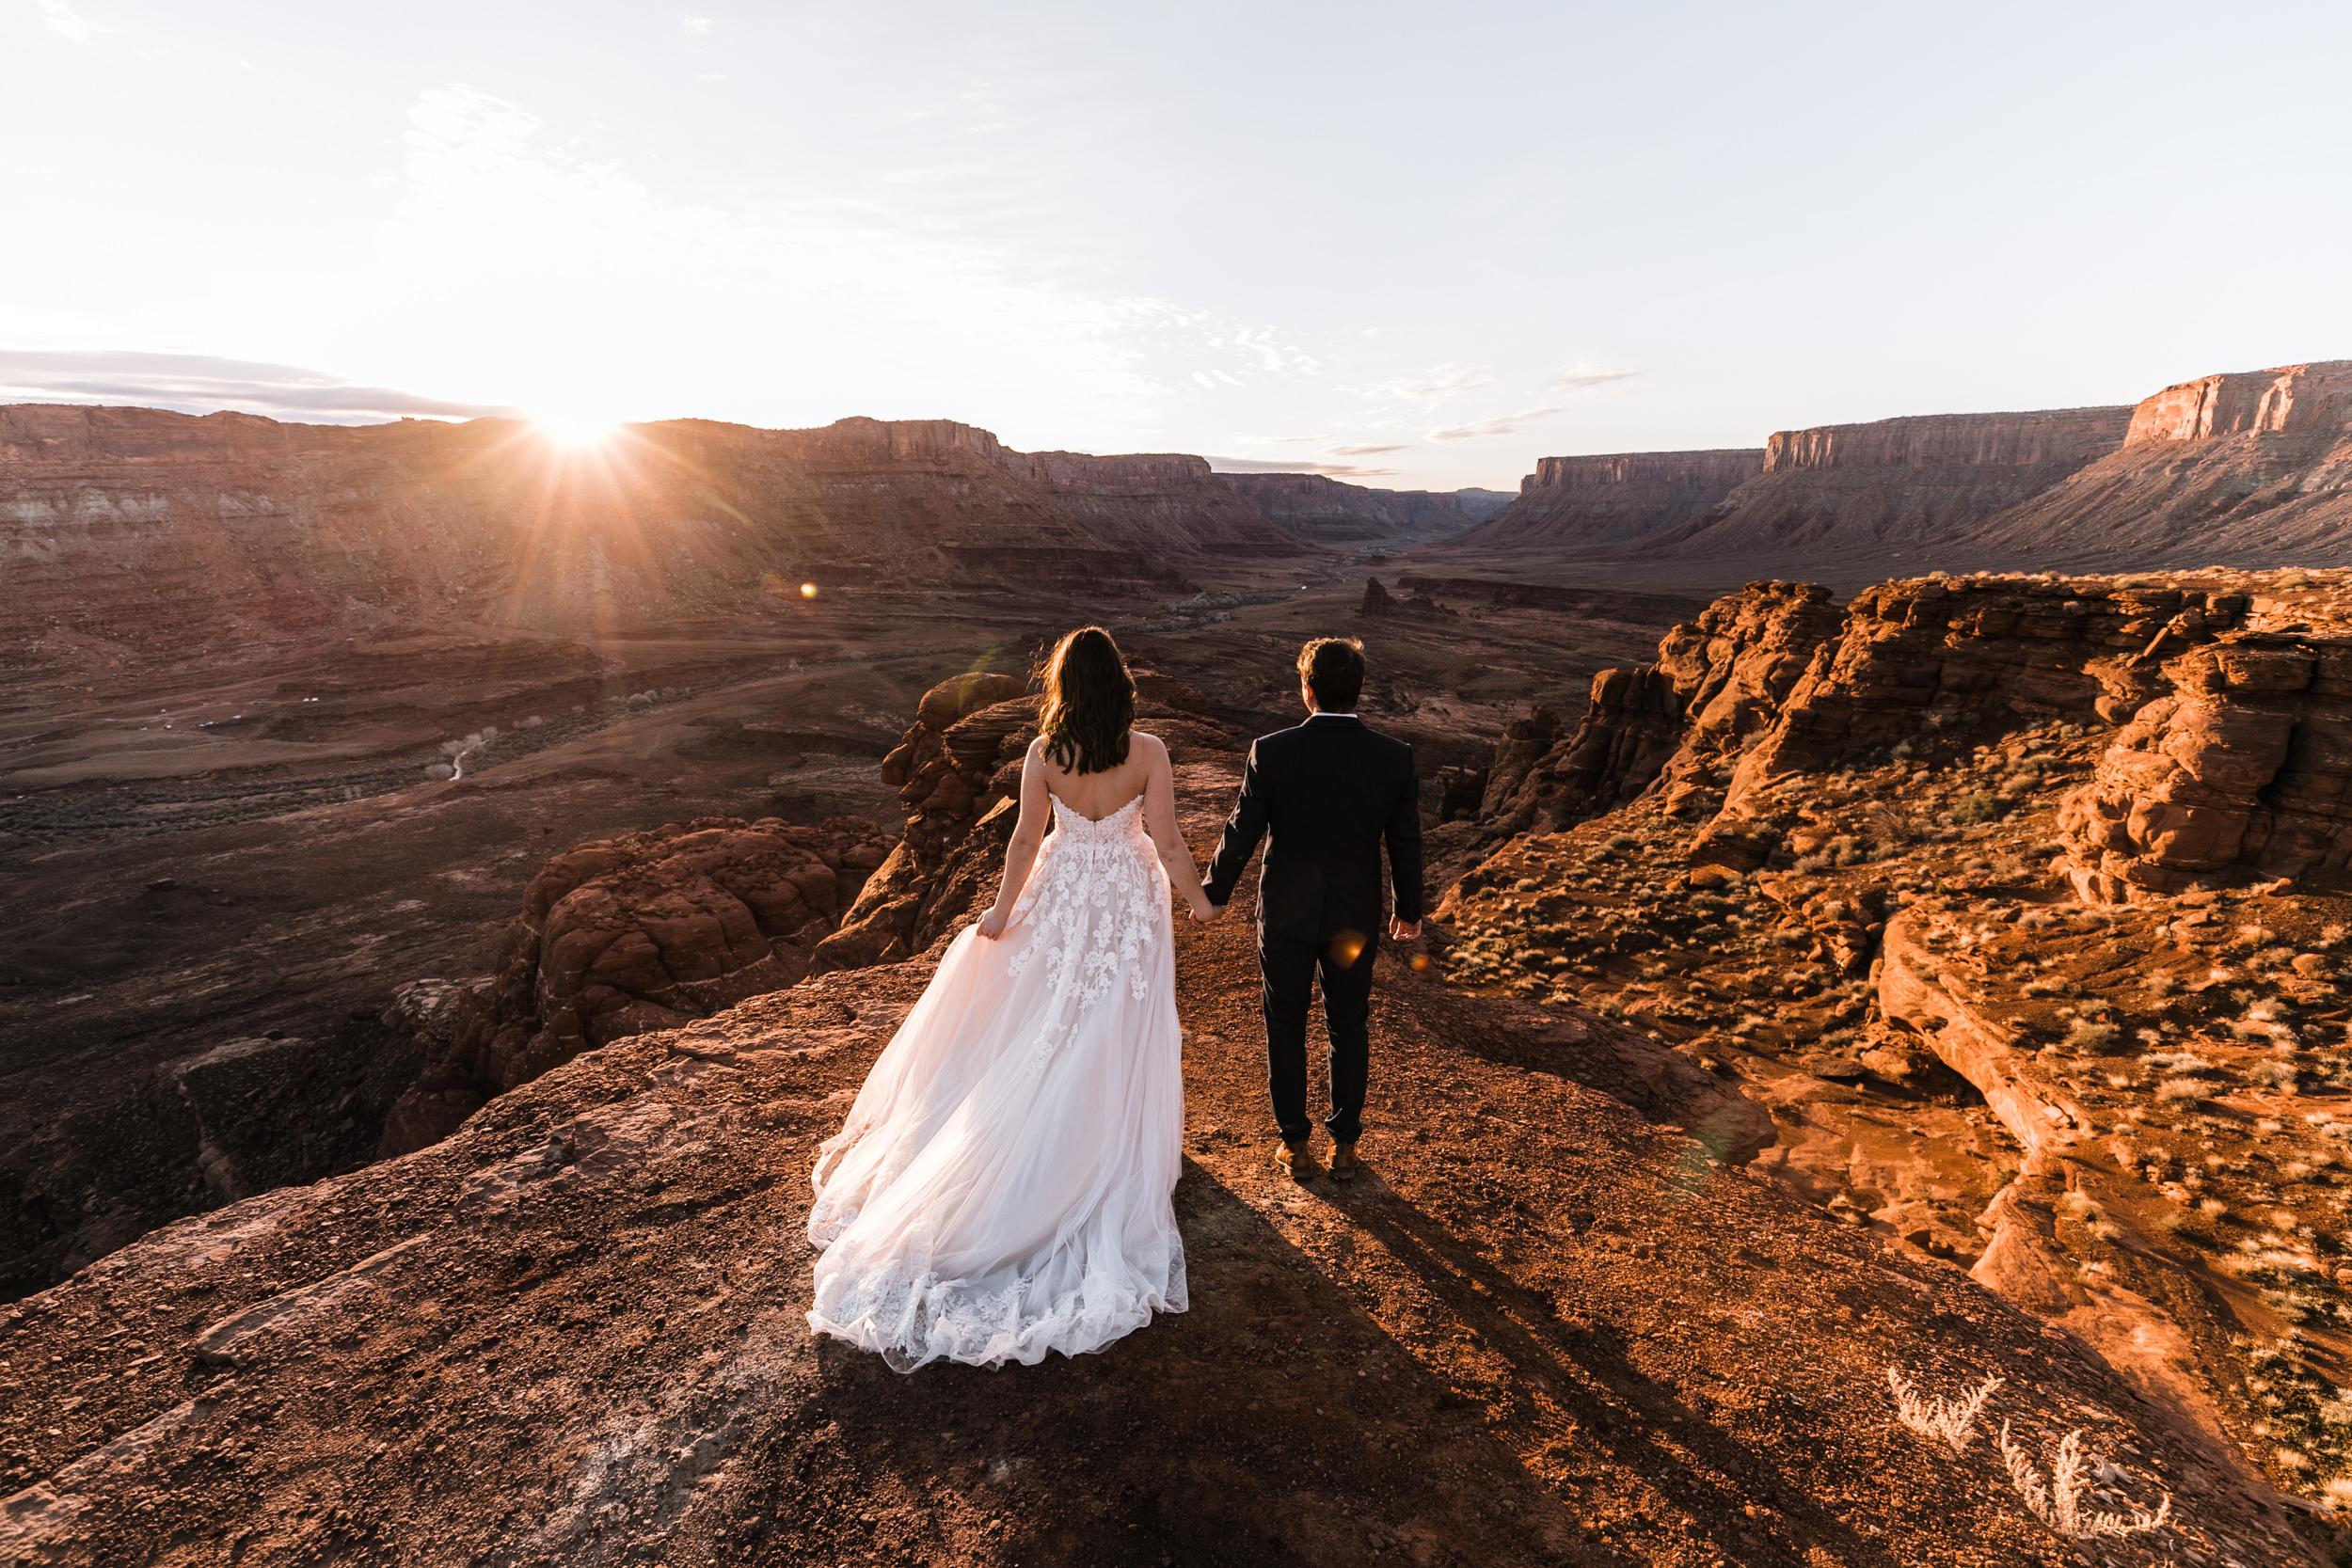 Shooting couples as the sun rises over the canyons in the desert will always be one of the most beautiful things about my job as an adventure wedding photographer!